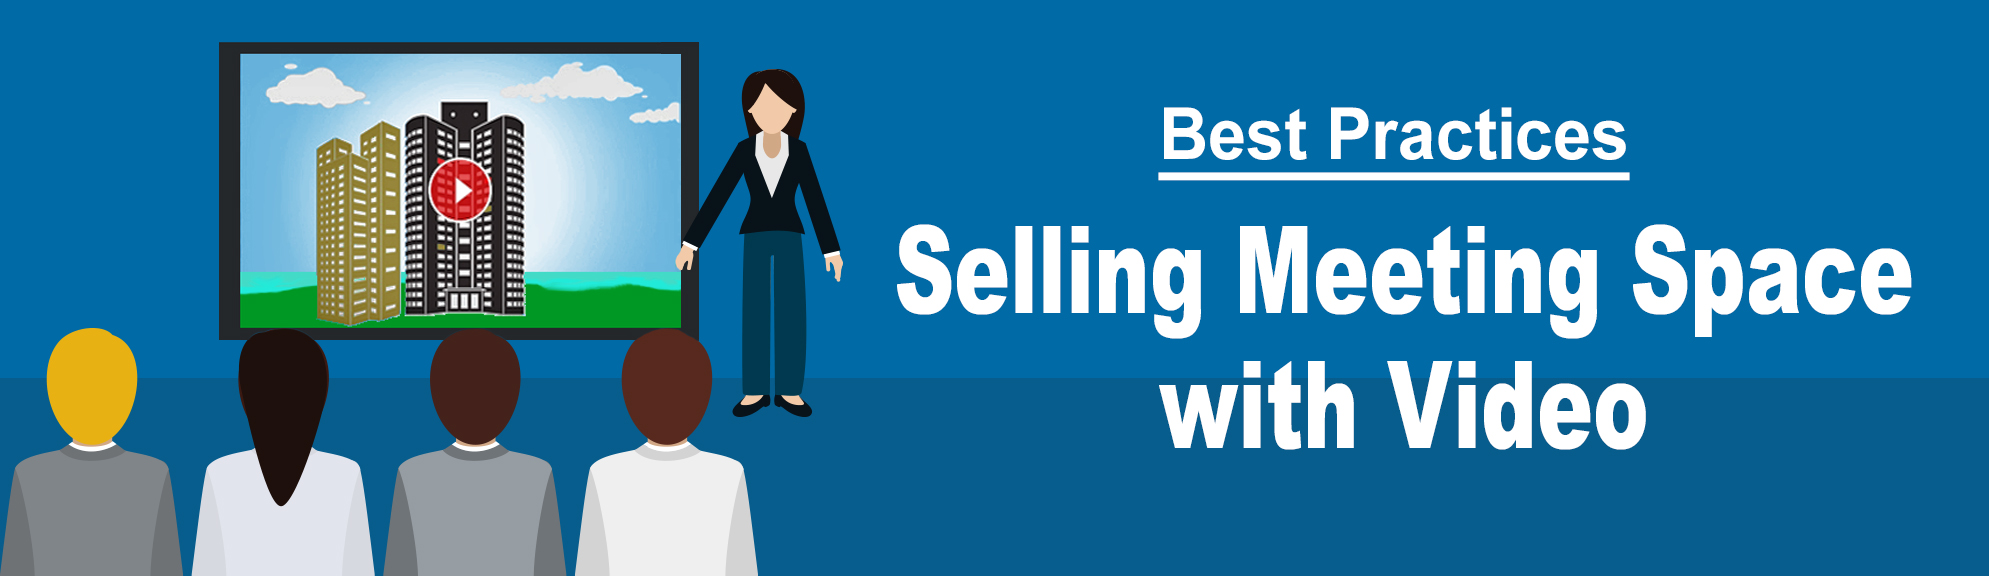 Best Practices: Selling Meeting Space with Video